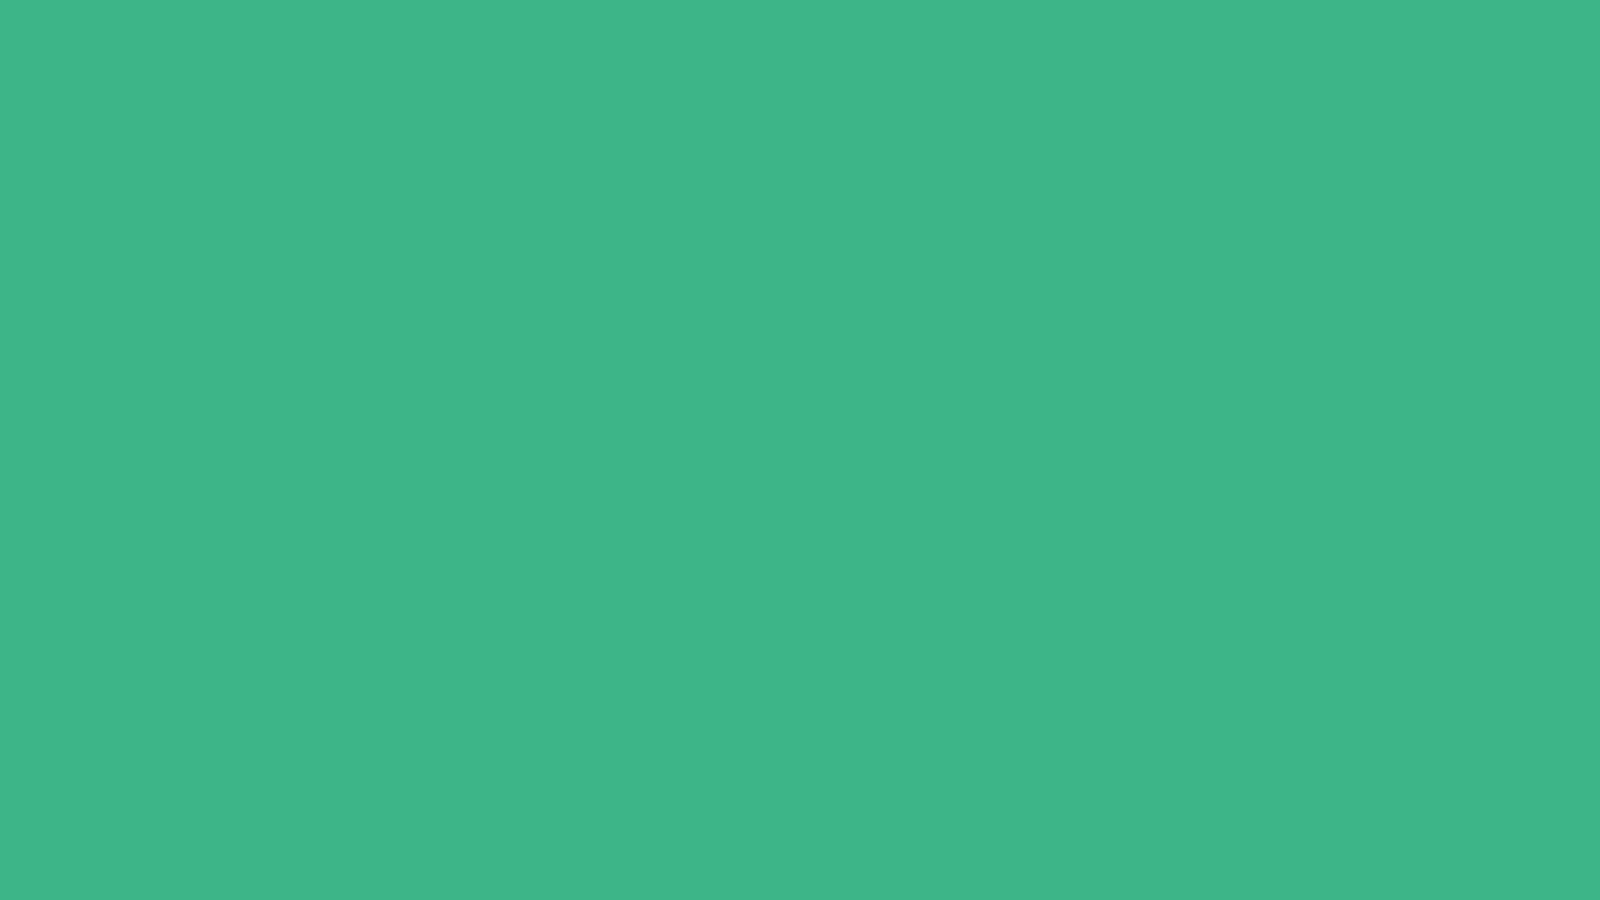 1600x900 Mint Solid Color Background